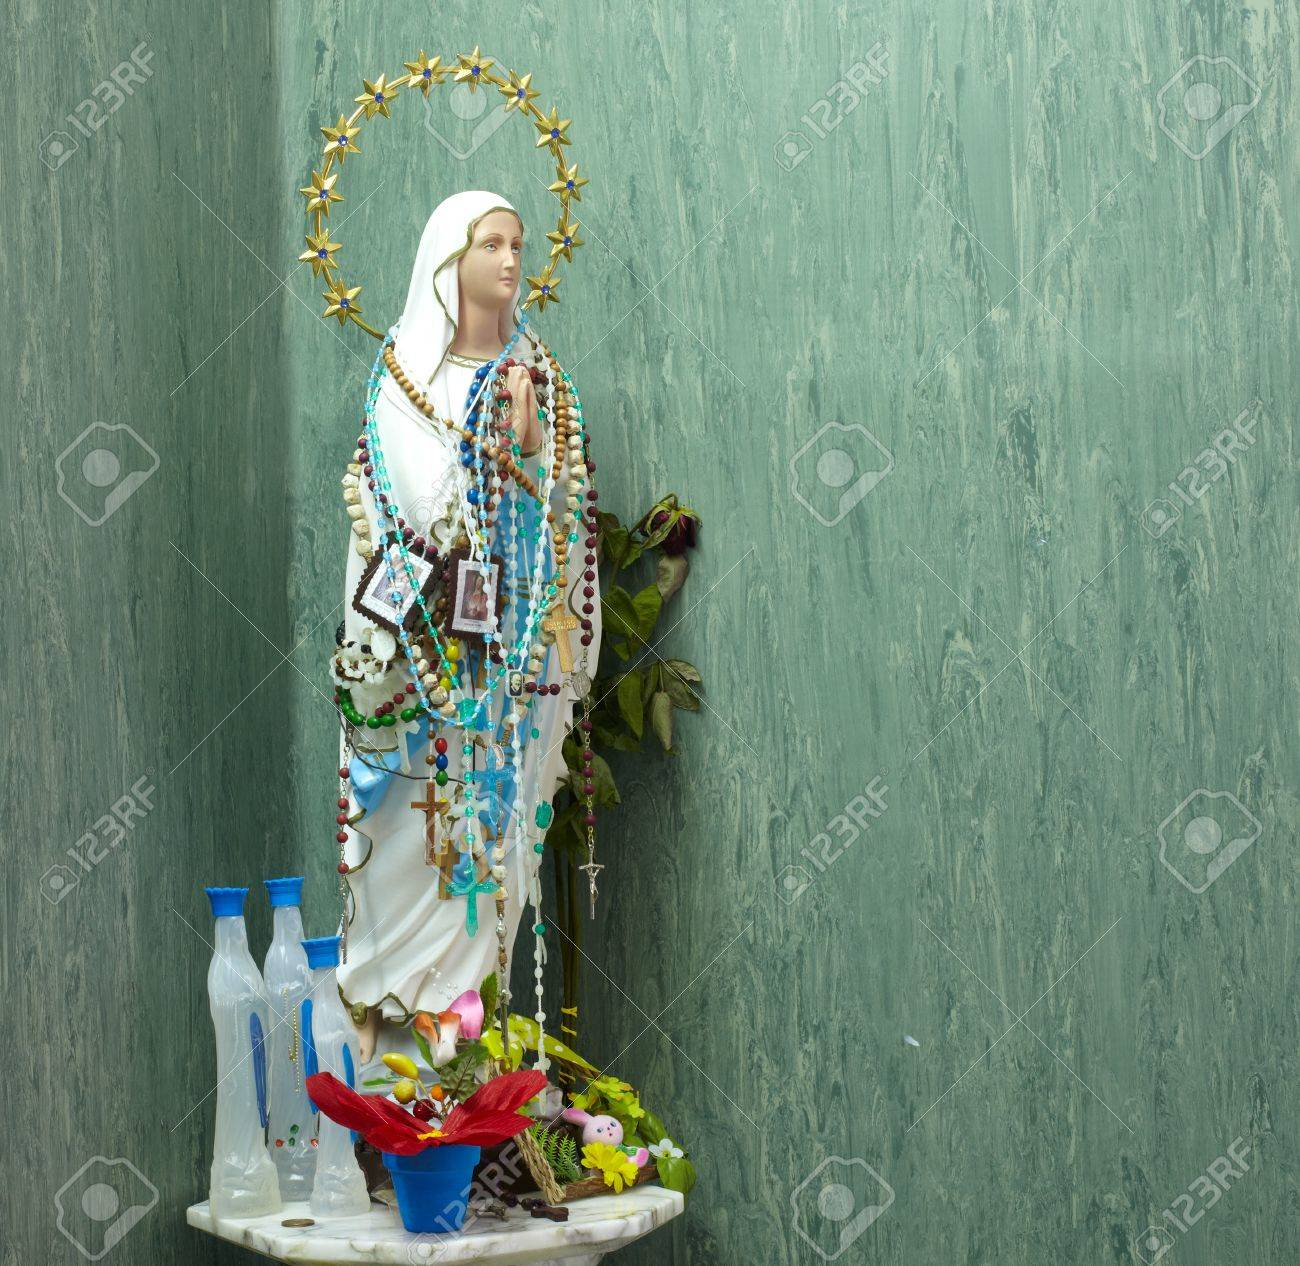 Statue of Virgin Mary covered with rosaries Stock Photo - 11035405